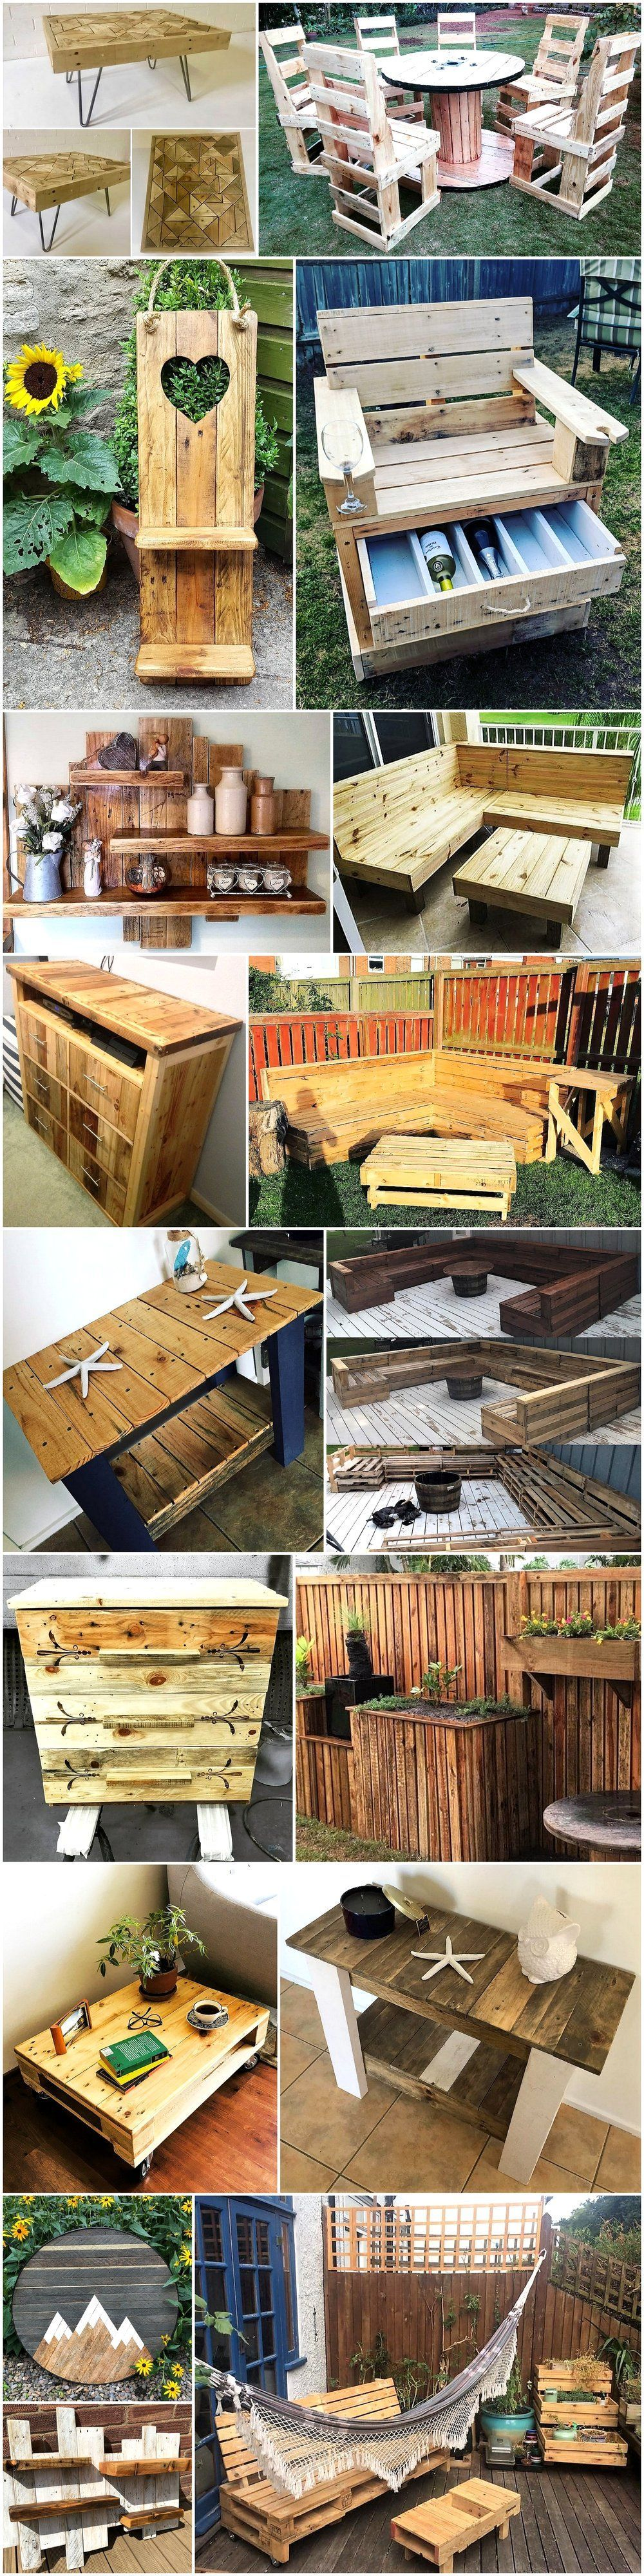 Woodworking Projects   Wood pallets, Pallet crafts, Wood ...